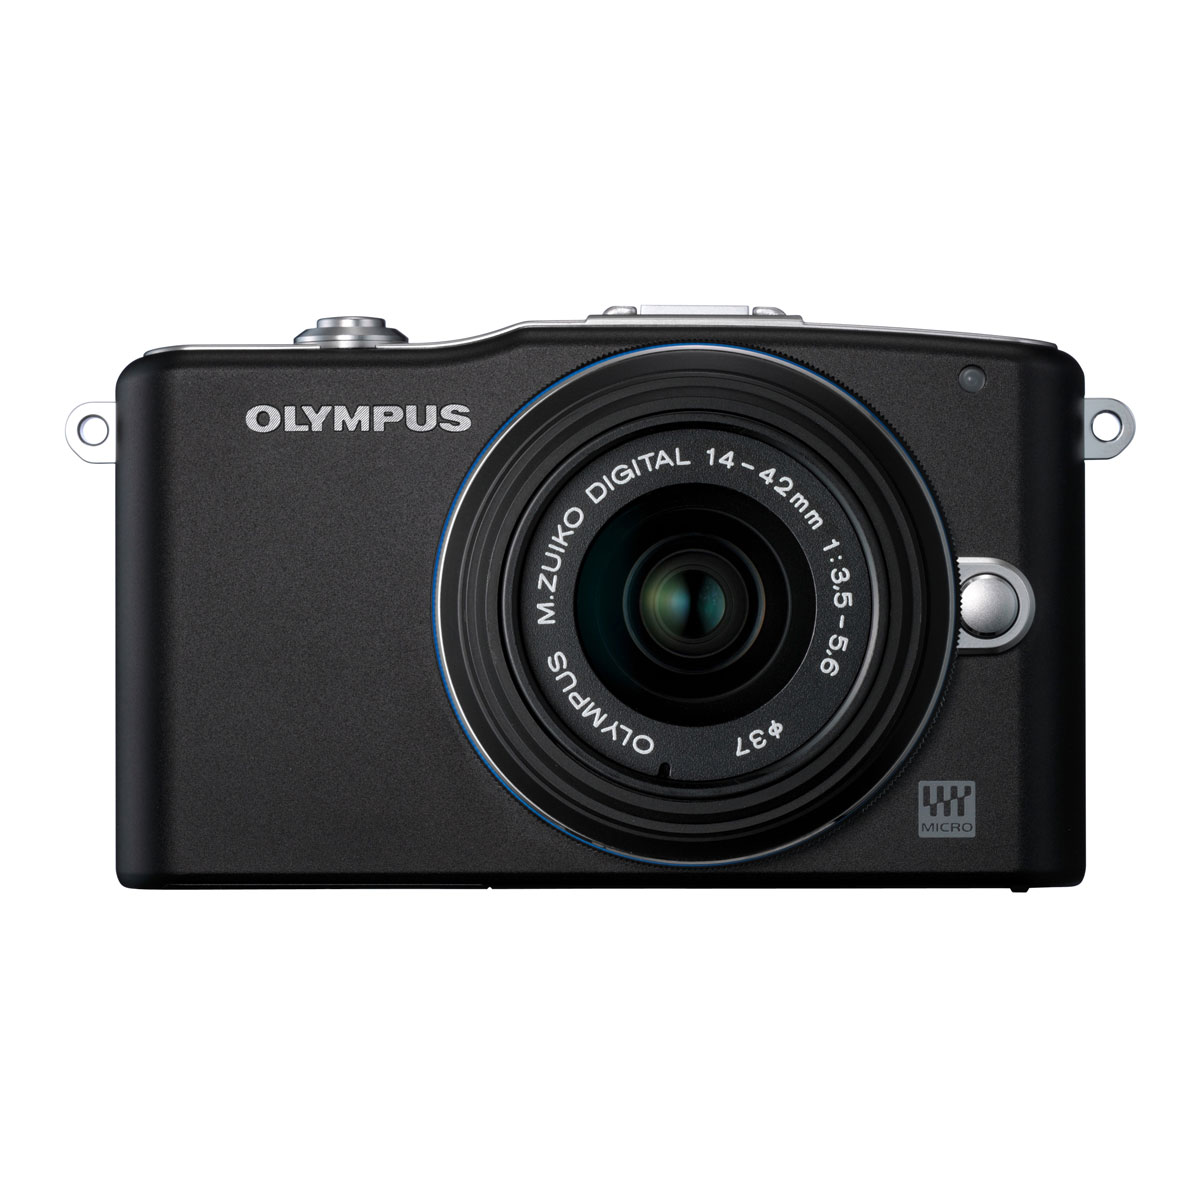 olympus pen mini e pm1 noir objectif m zuiko digital 14 42 mm appareil photo hybride olympus. Black Bedroom Furniture Sets. Home Design Ideas